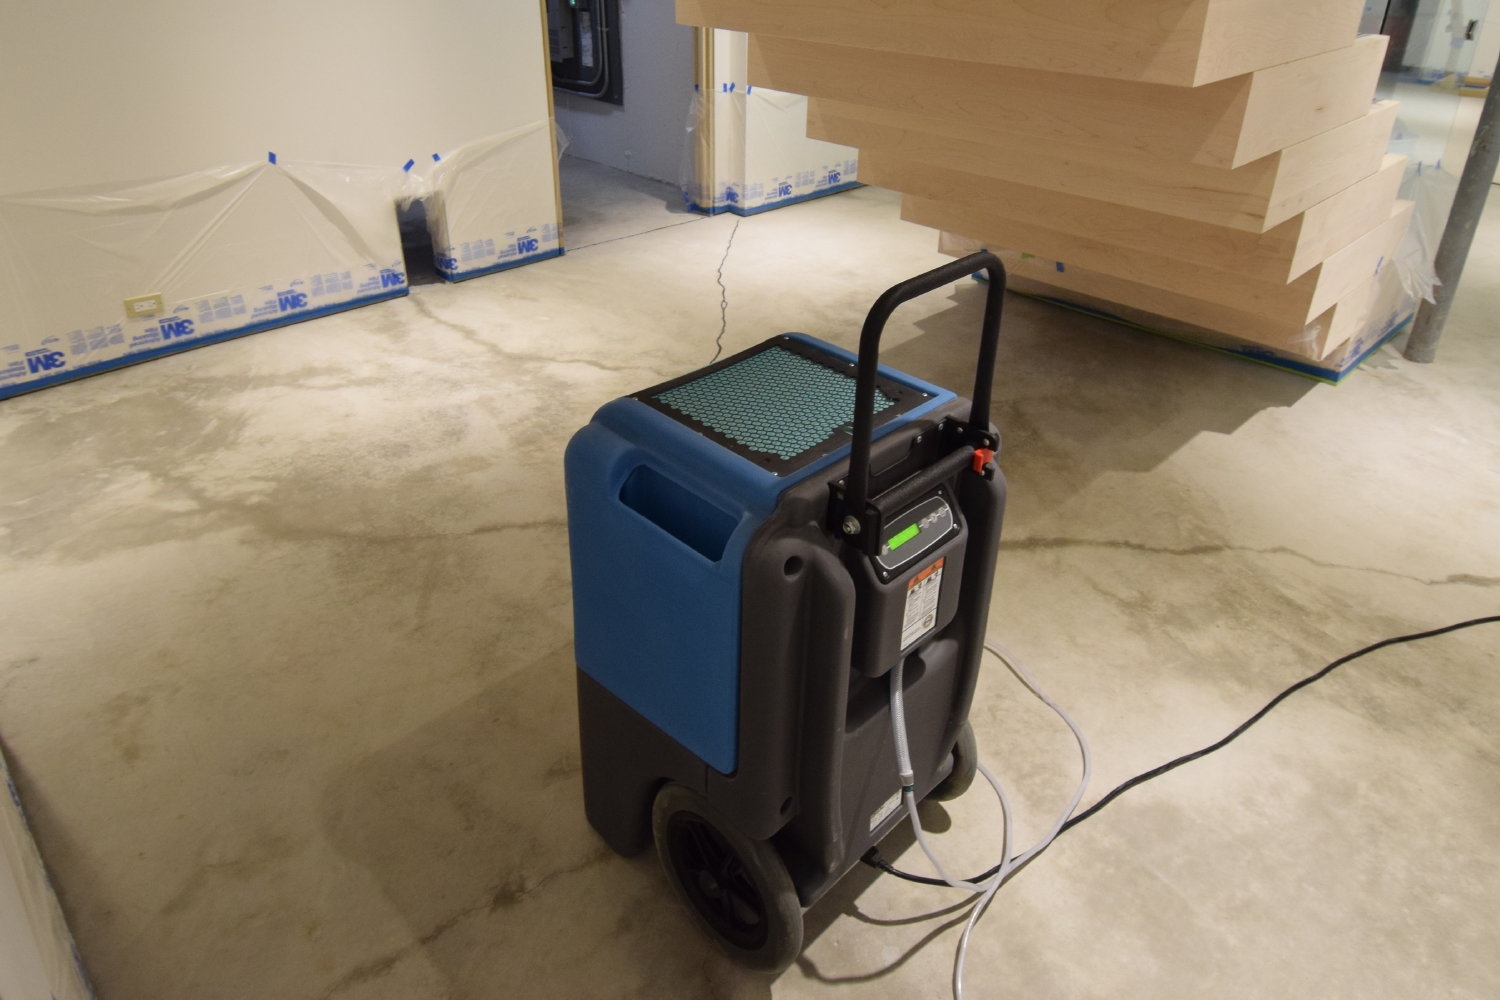 This is the LGR 700XLi from Dri-Eaz. Used in conjunction with a blower fan, this dehumidifier will dry out the dampness left from cleaning this basement concrete floor in time for it to be acid-stained the next day.